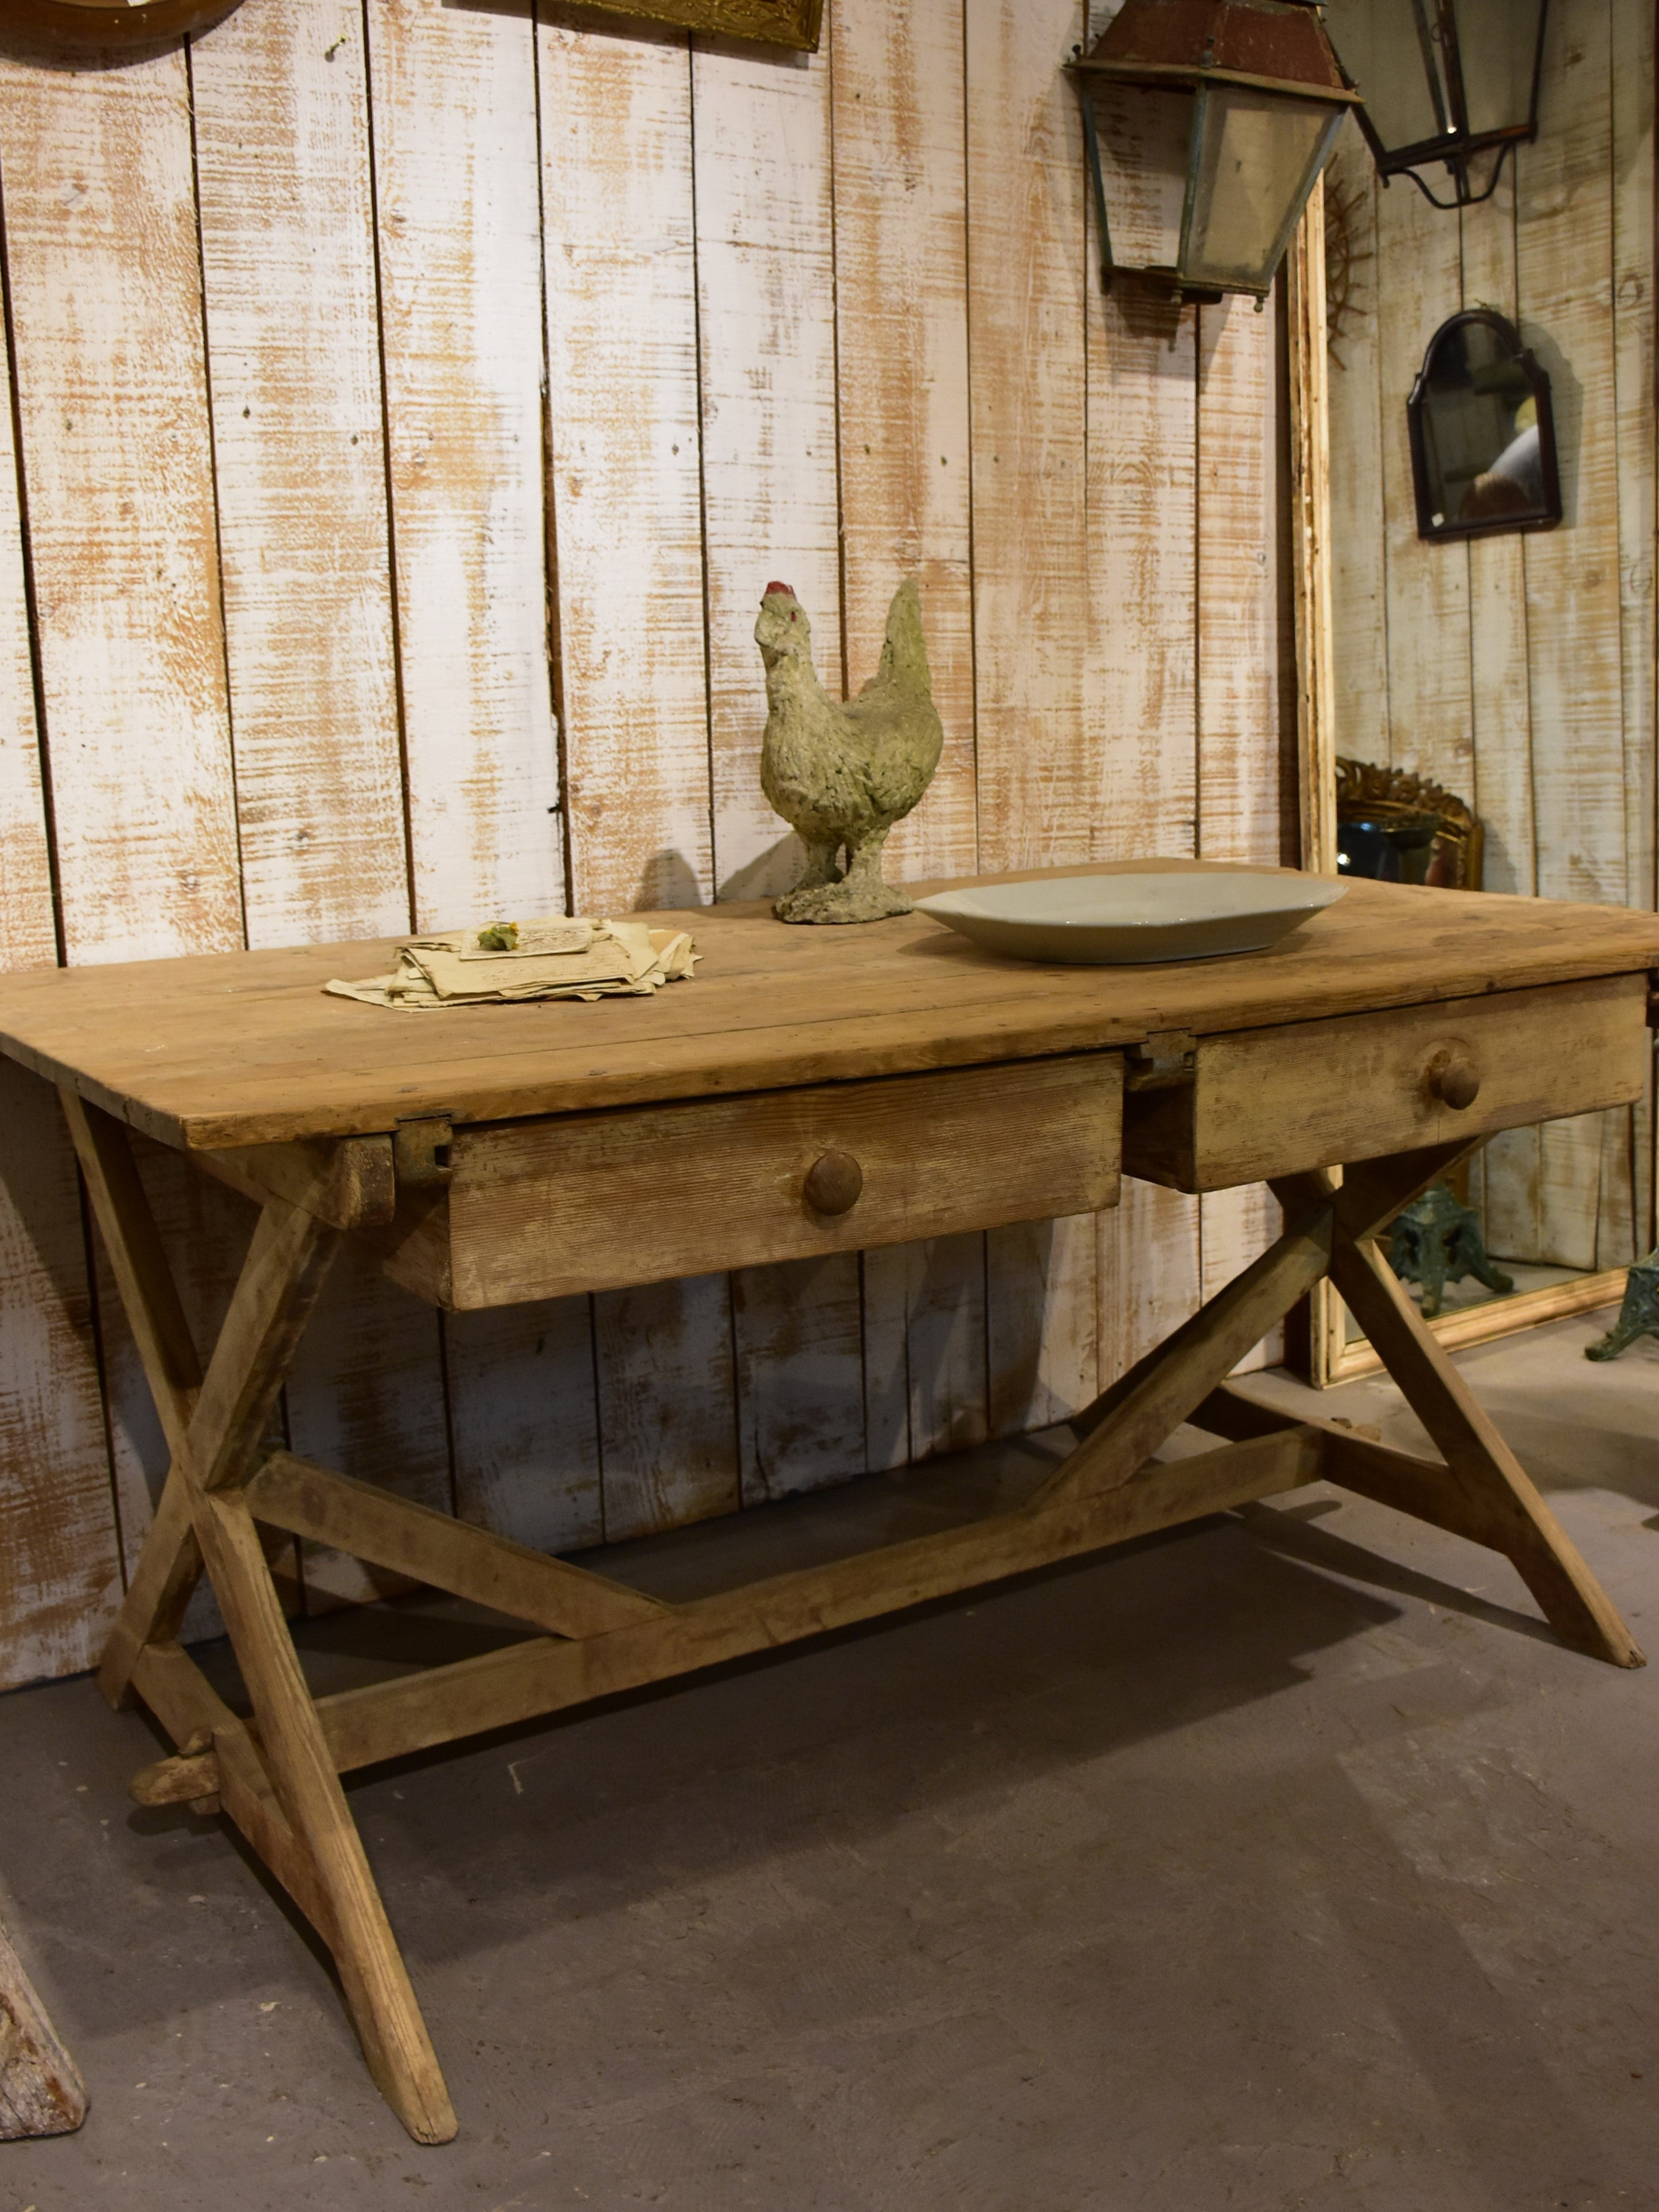 Large 19th century French farm table with cross braced legs